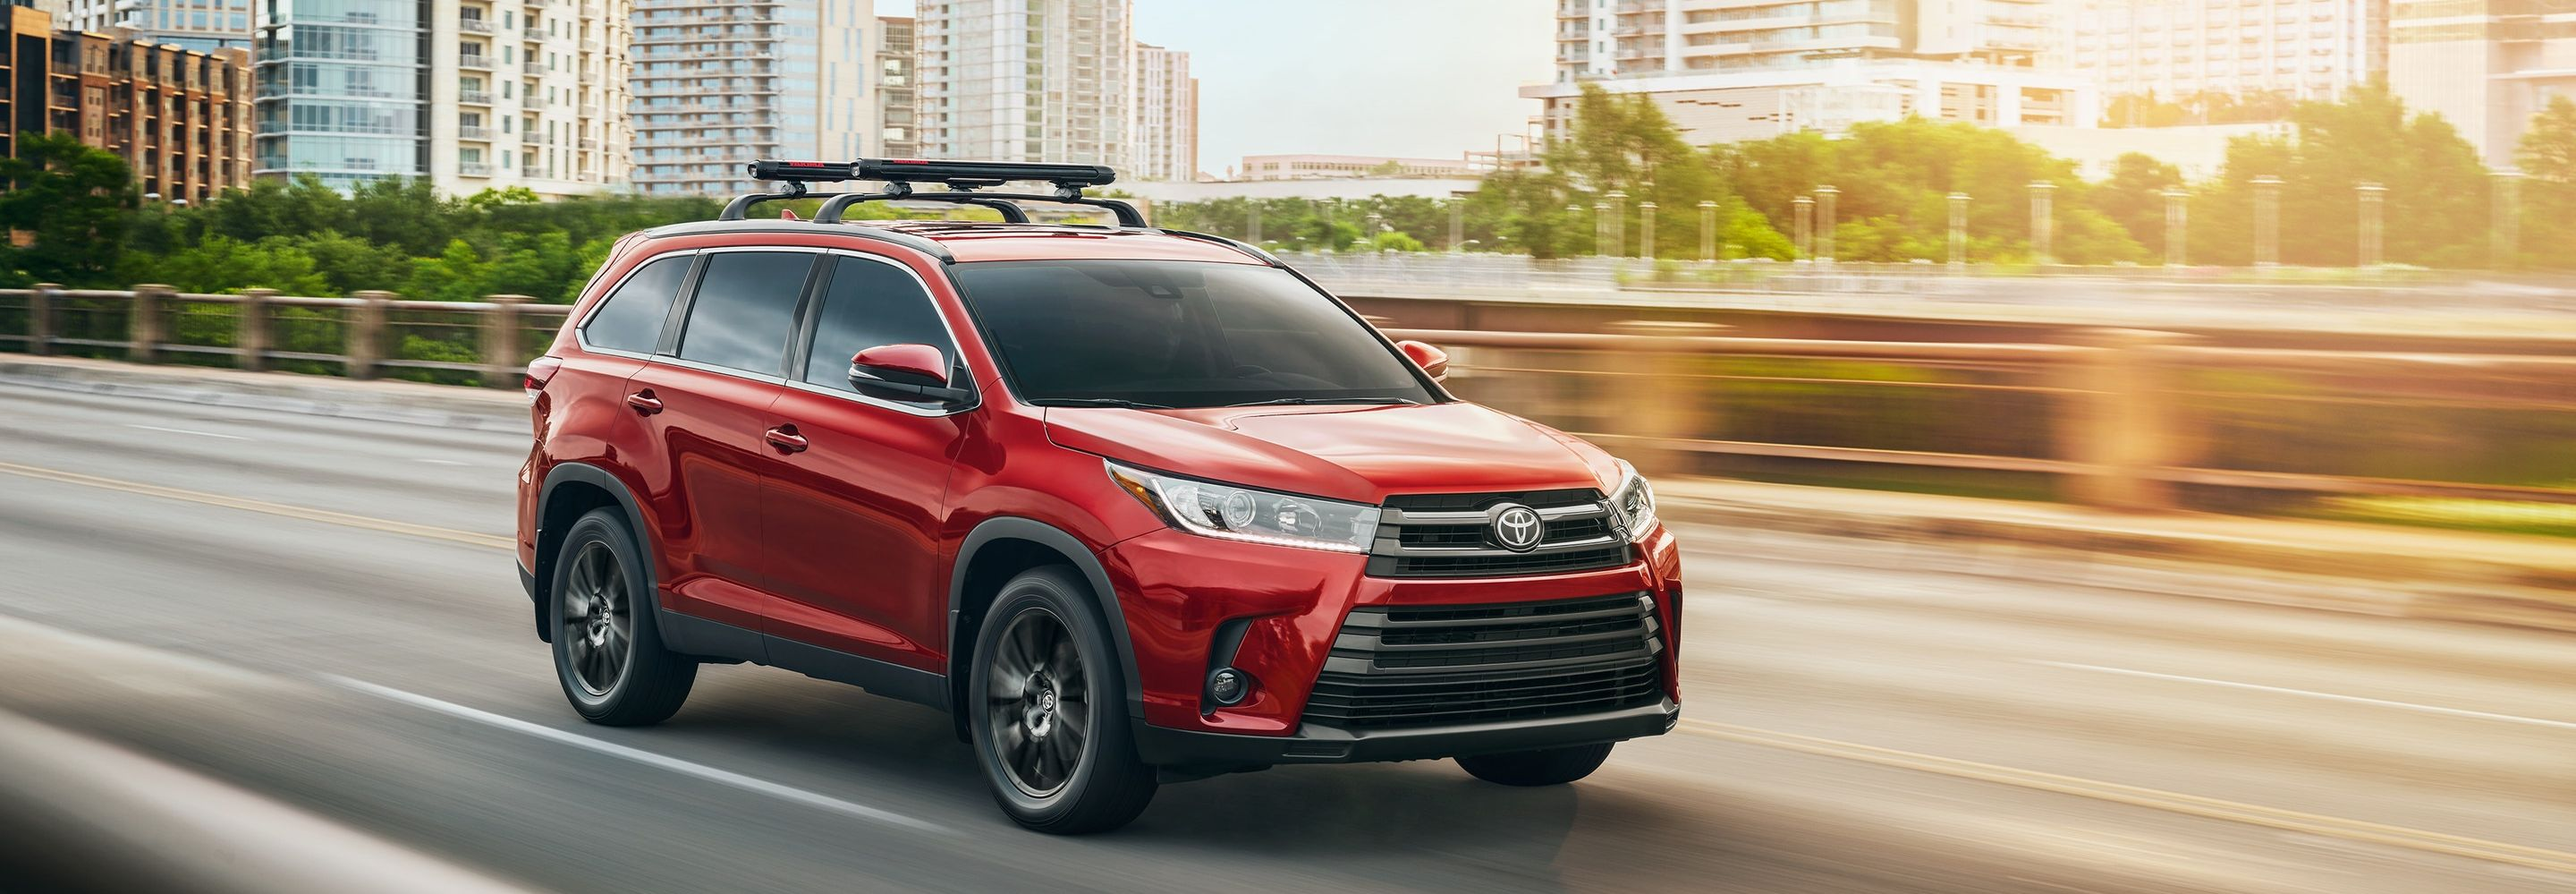 2019 Toyota Highlander for Sale near Paramus, NJ